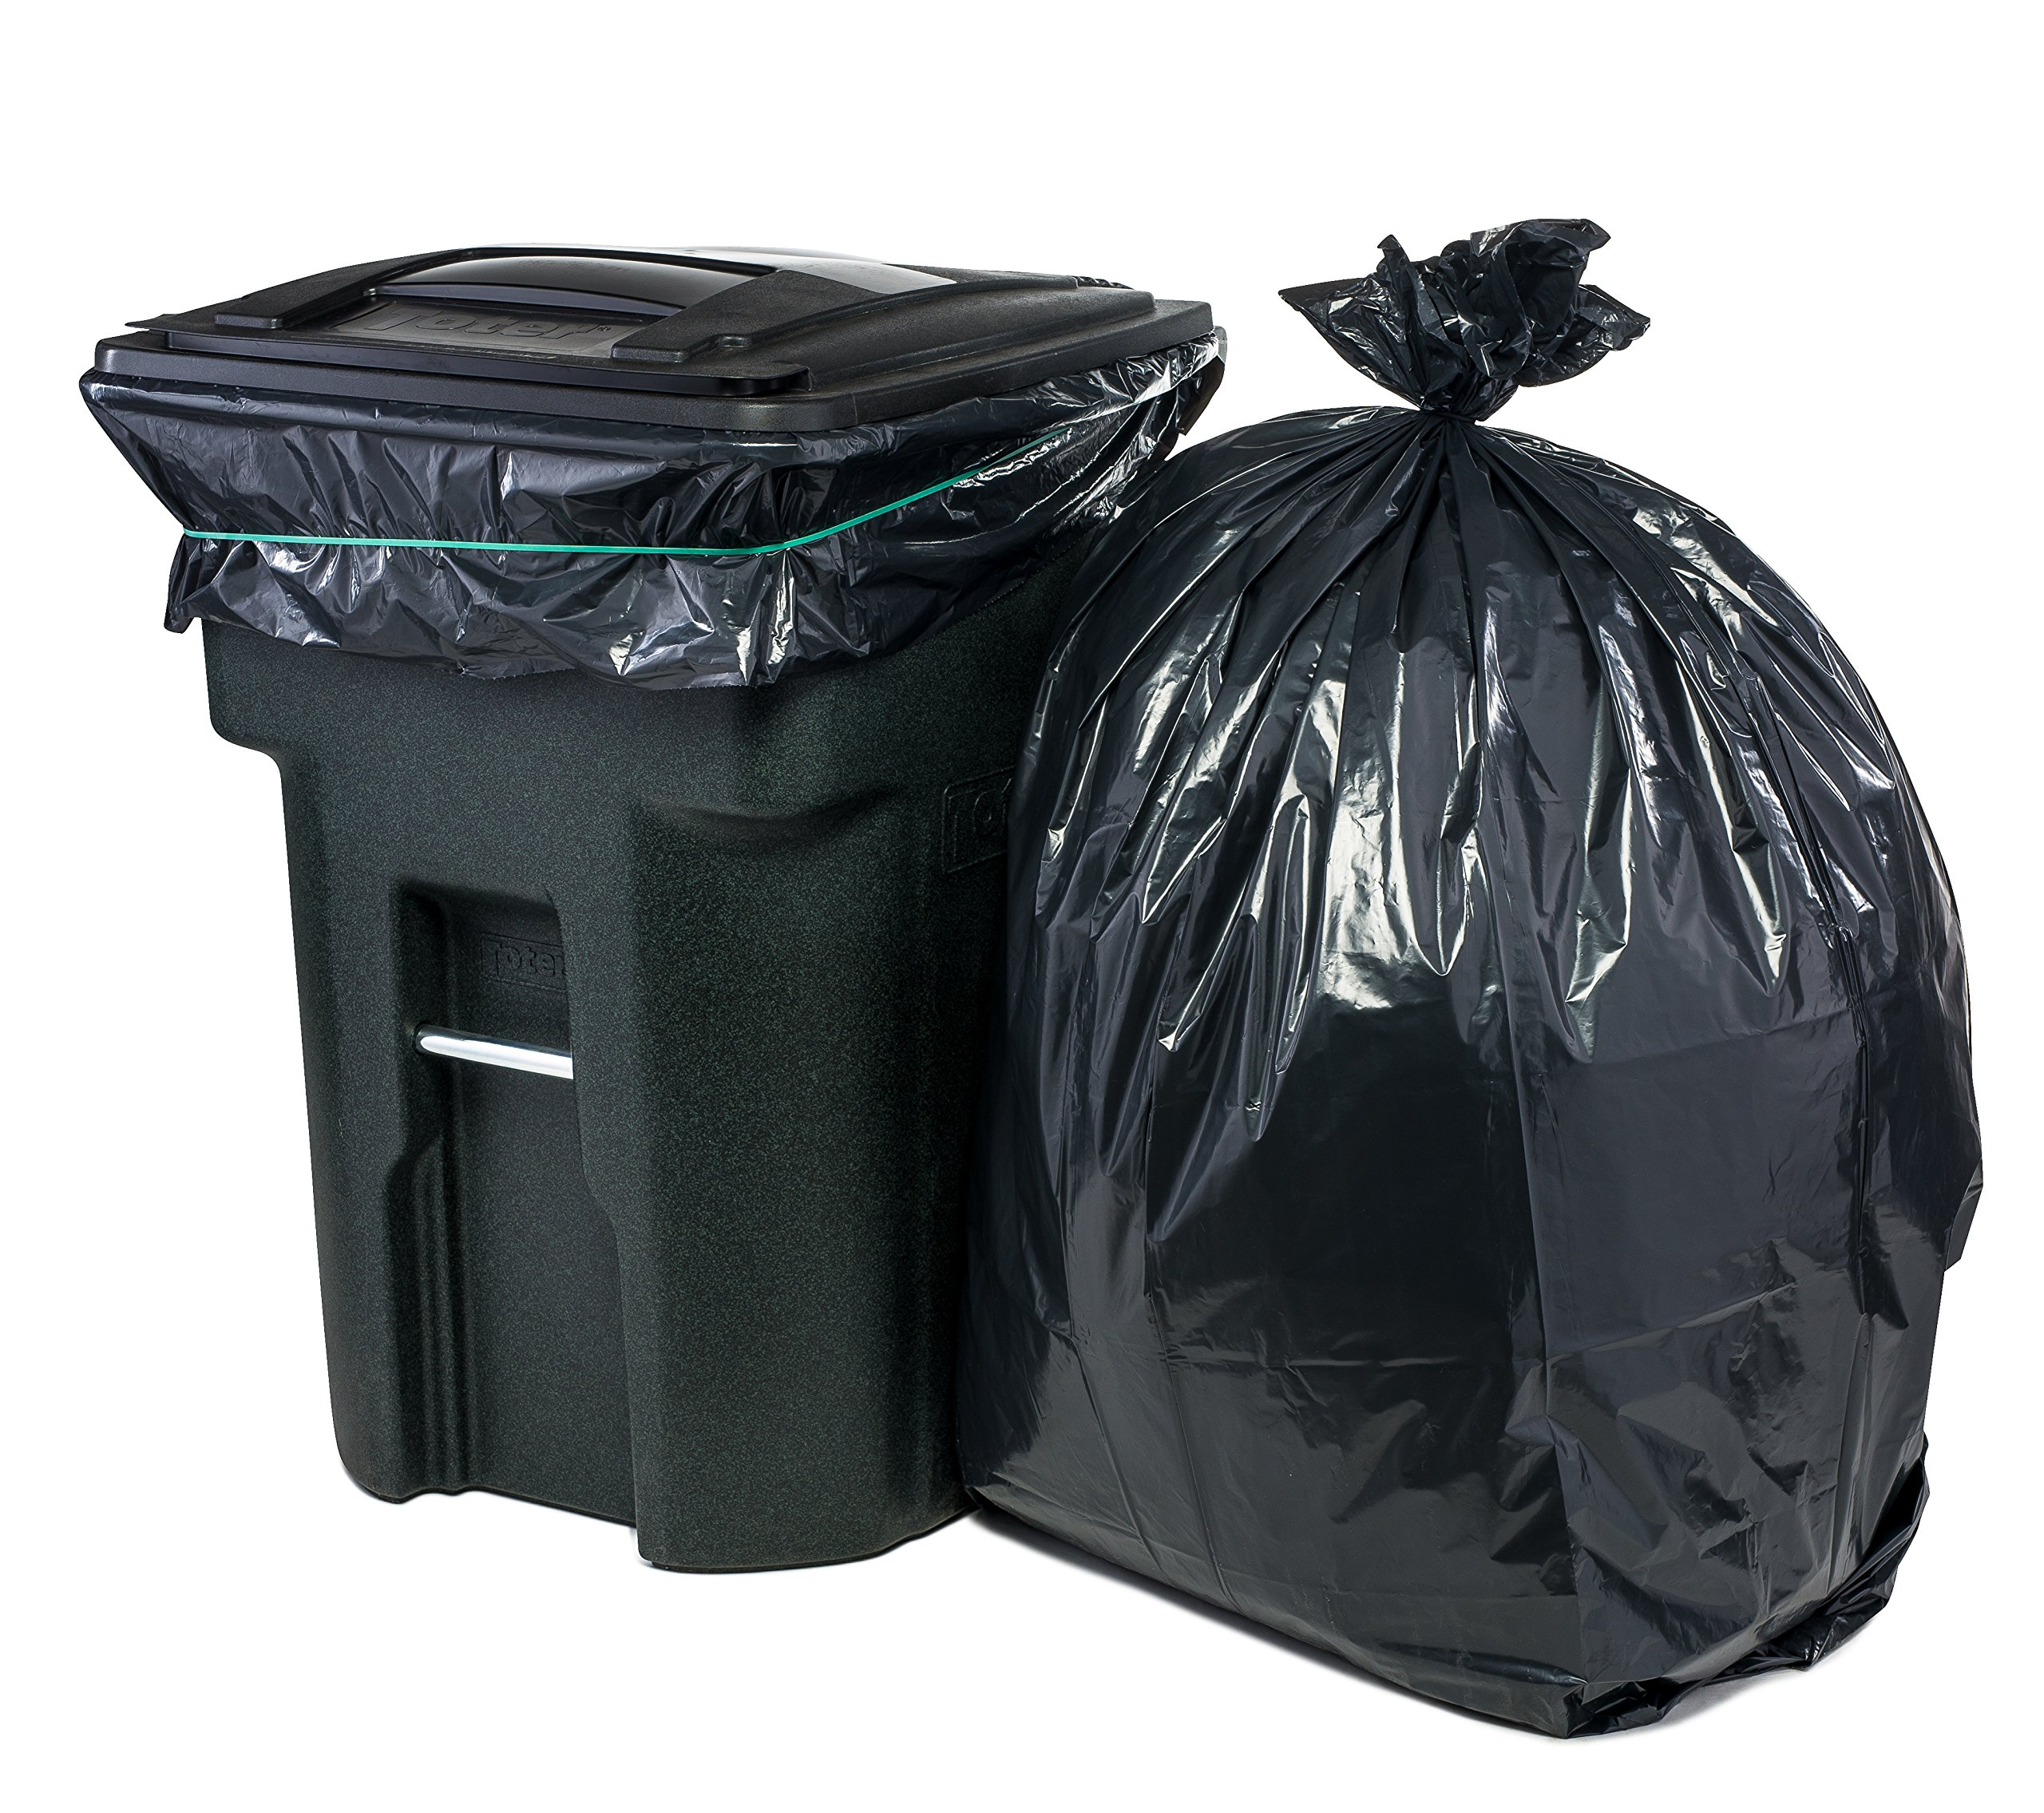 Plasticplace 95 Gal Trash bags, Black, 2 Mil, 61x68, 25 Bags per Case by Plasticplace (Image #1)